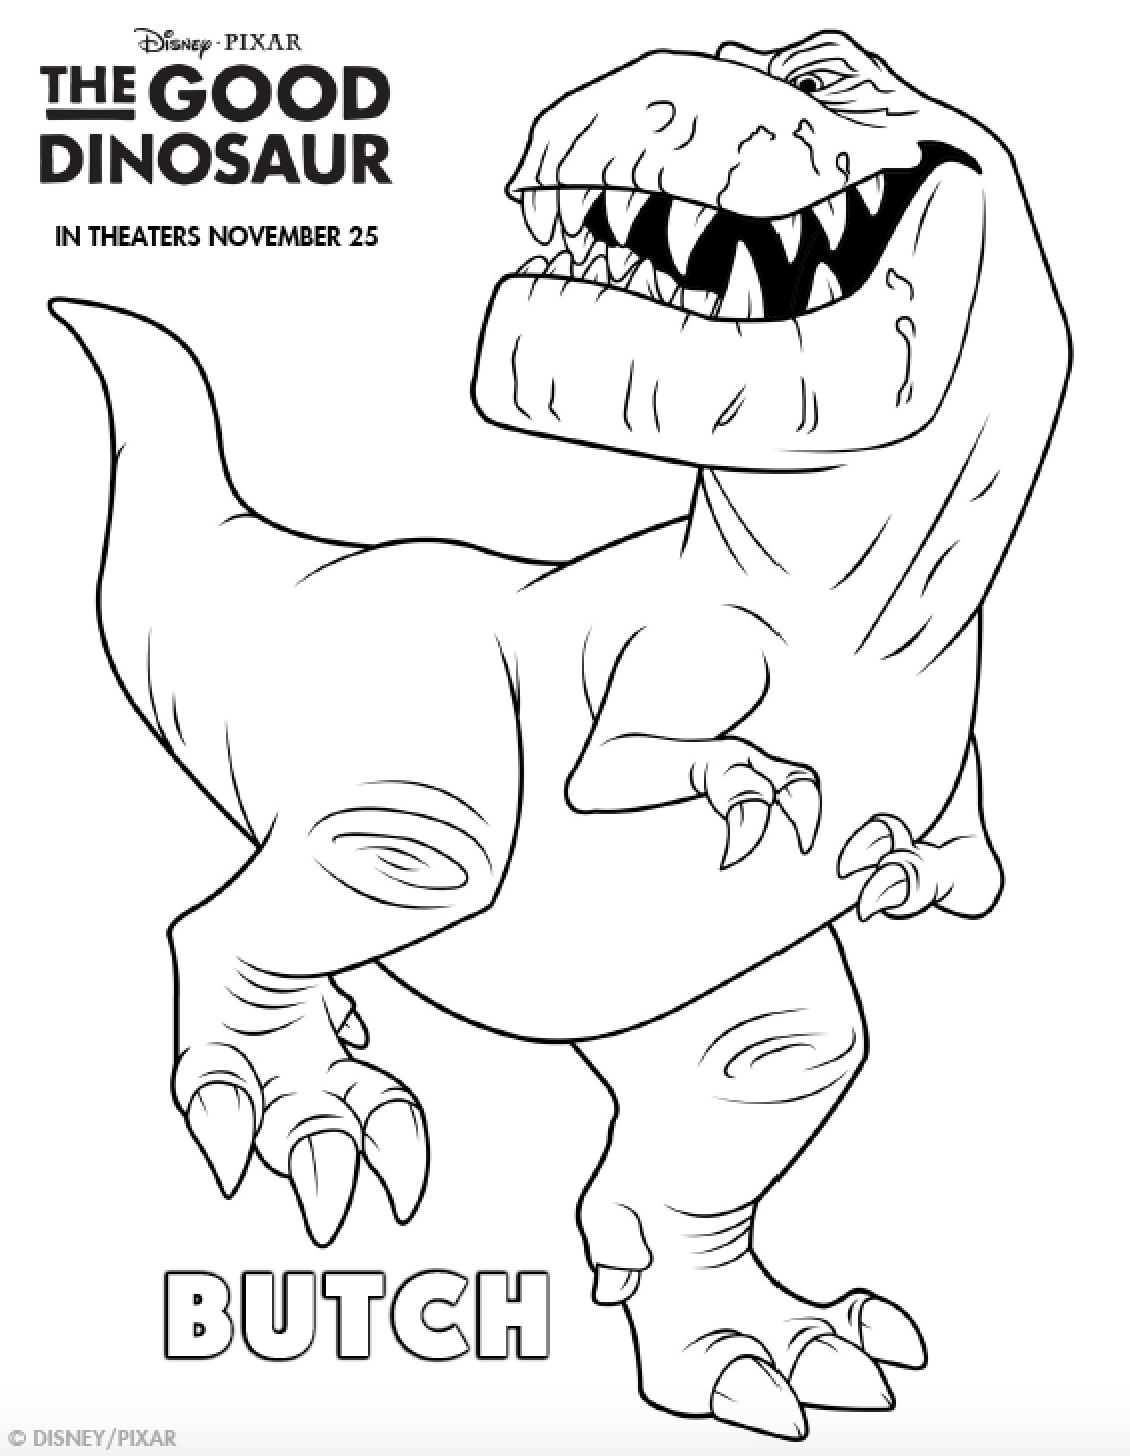 dinasour coloring pages dinosaur coloring pages coloringpages1001com coloring pages dinasour